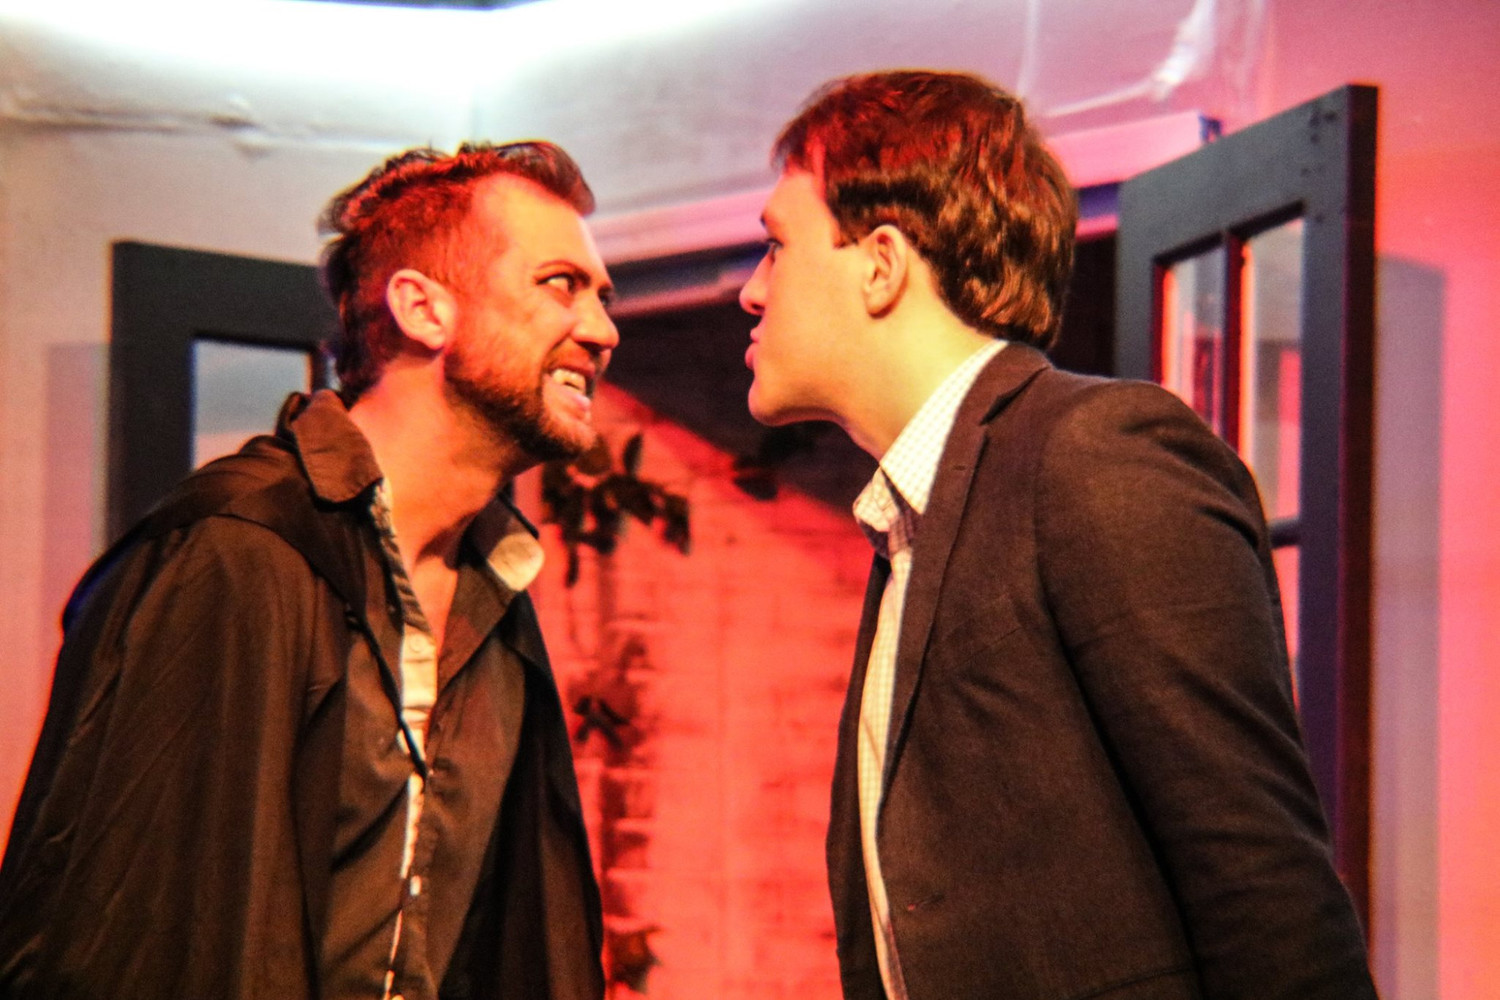 BWW Review: DRACULA IS A BLOODY GOOD TIME at Carrollwood Players Theatre